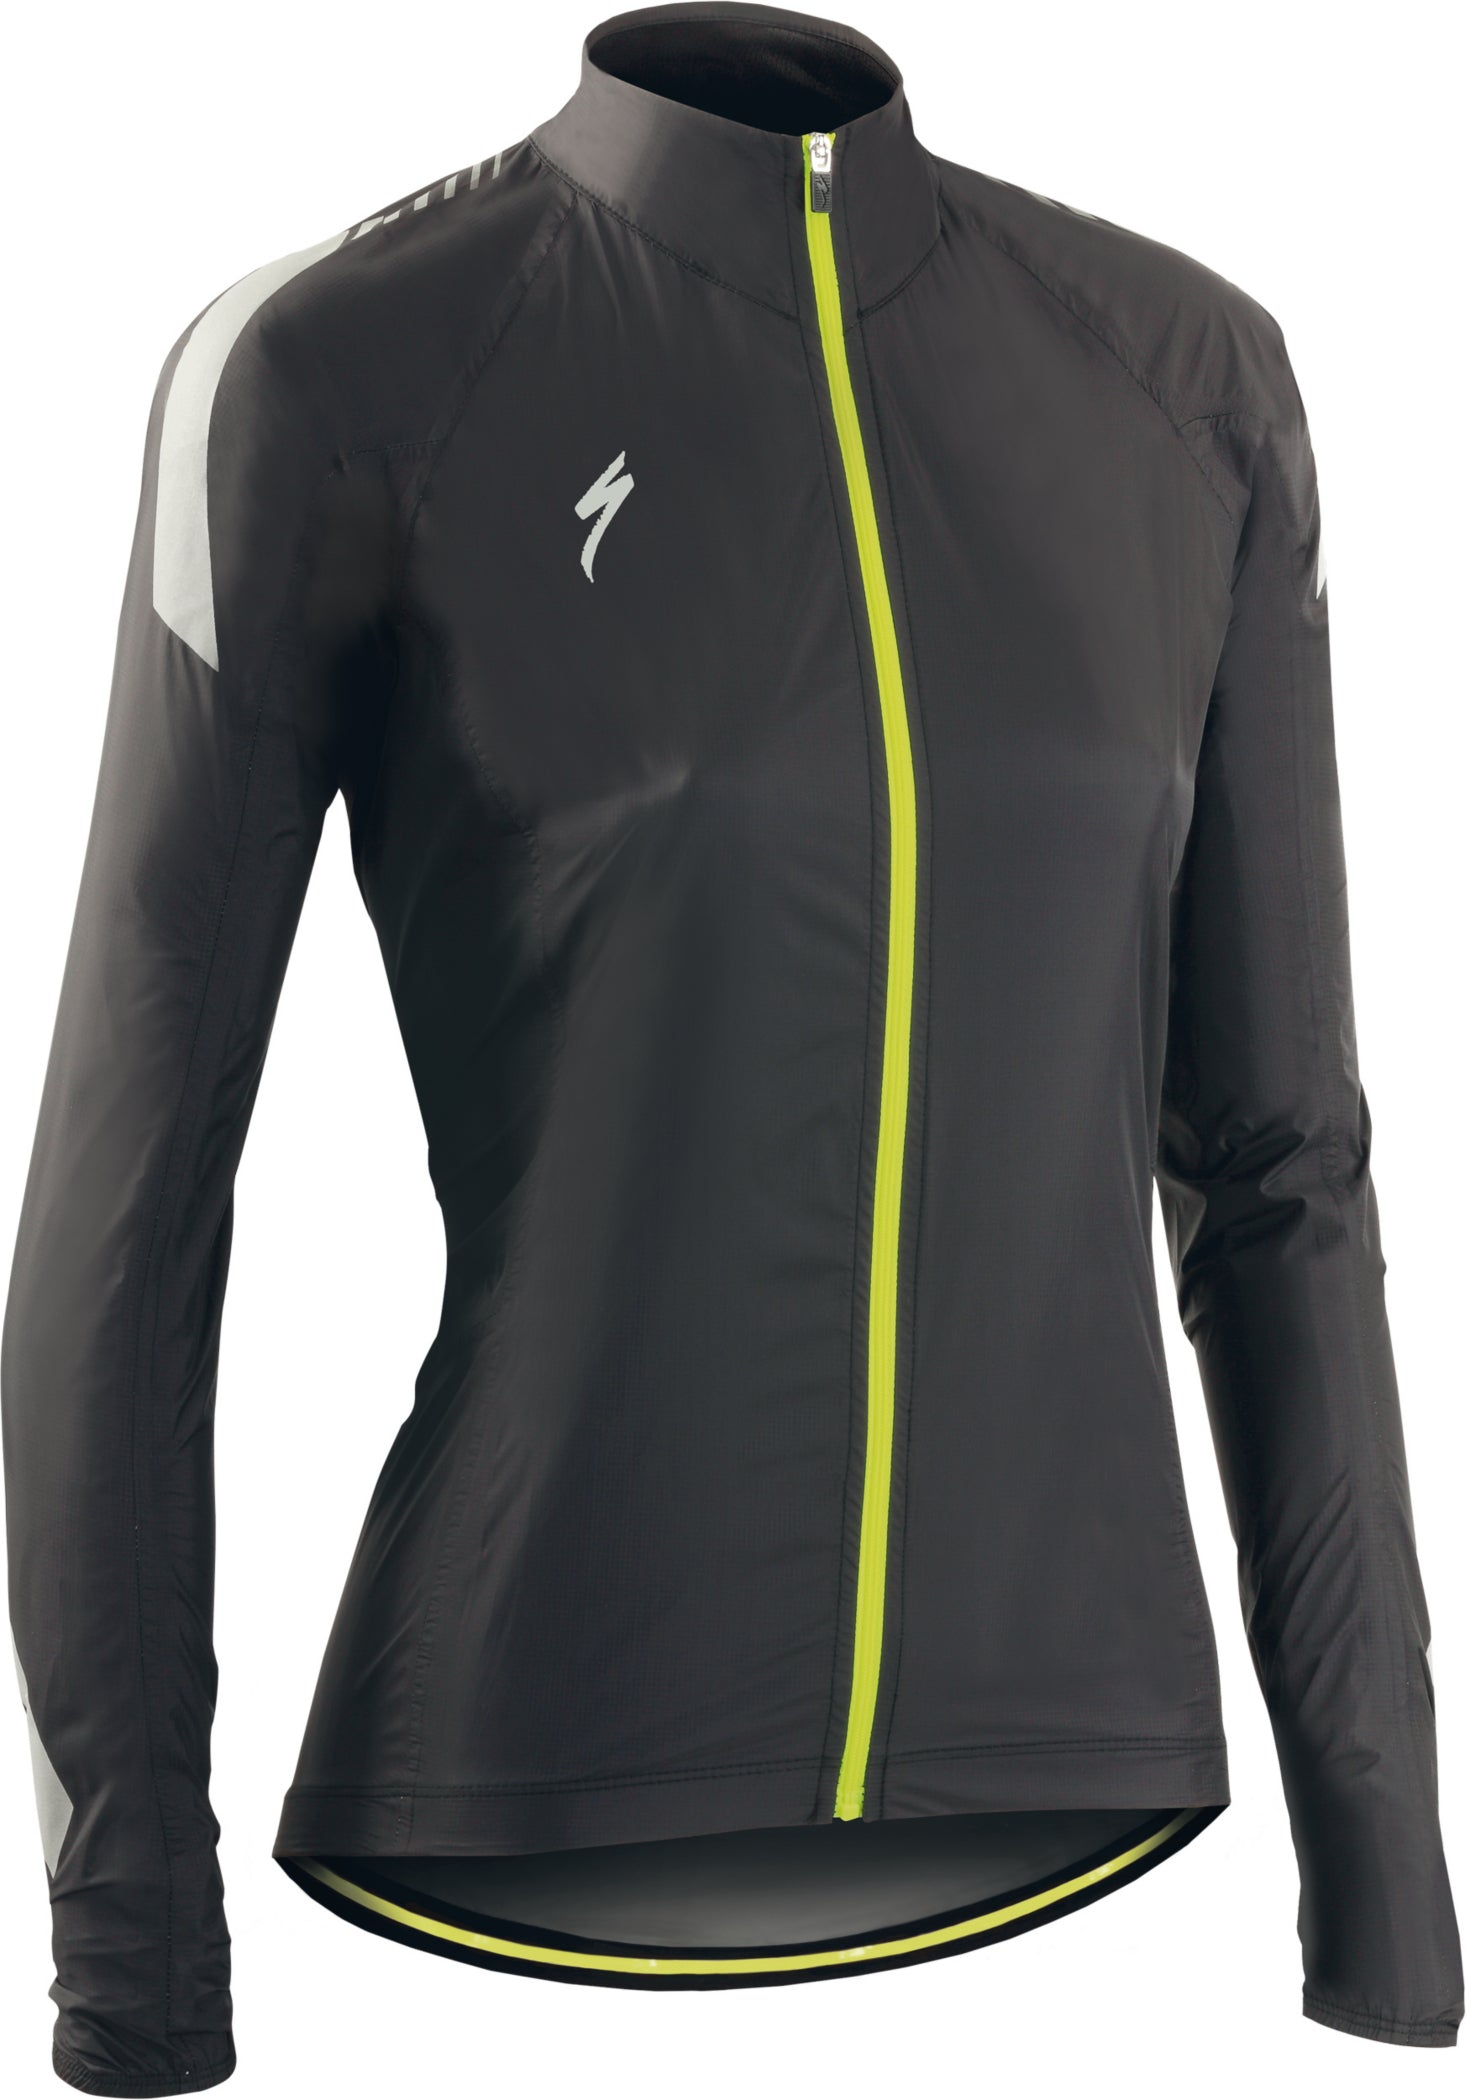 Deflect RBX Elite Hi Vis Women's Jacket